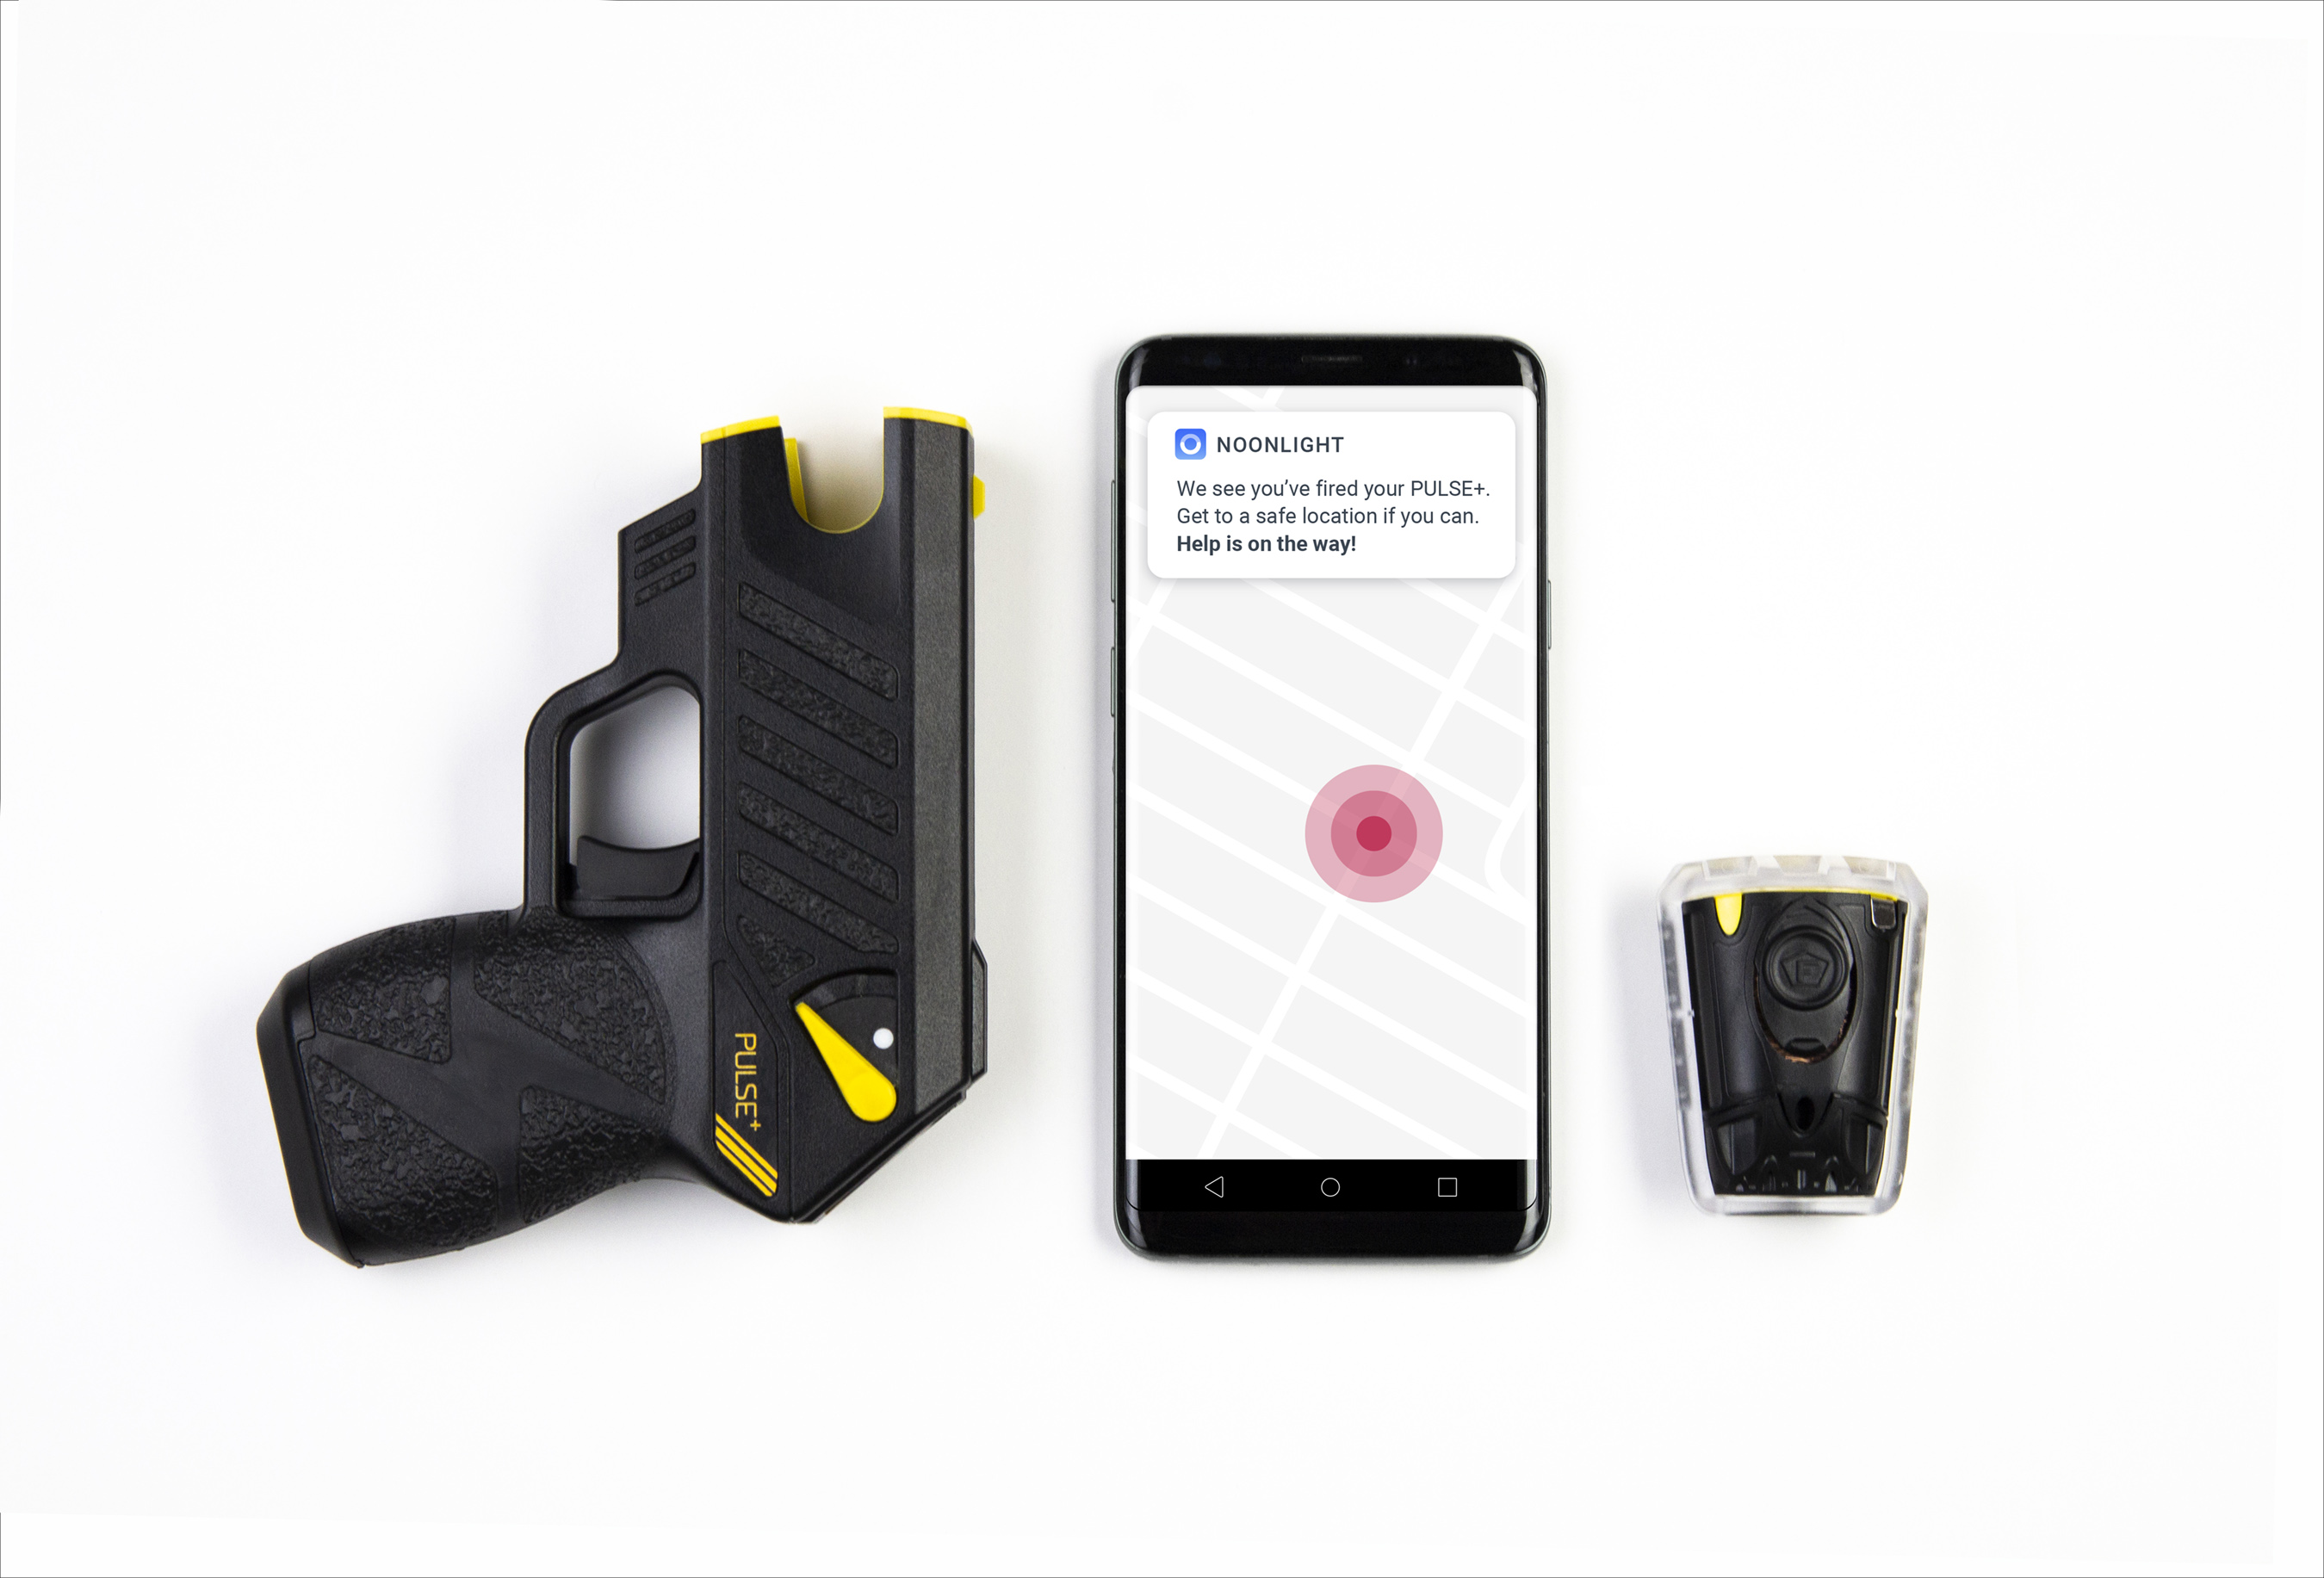 TASER Pulse+ is the first connected consumer TASER device